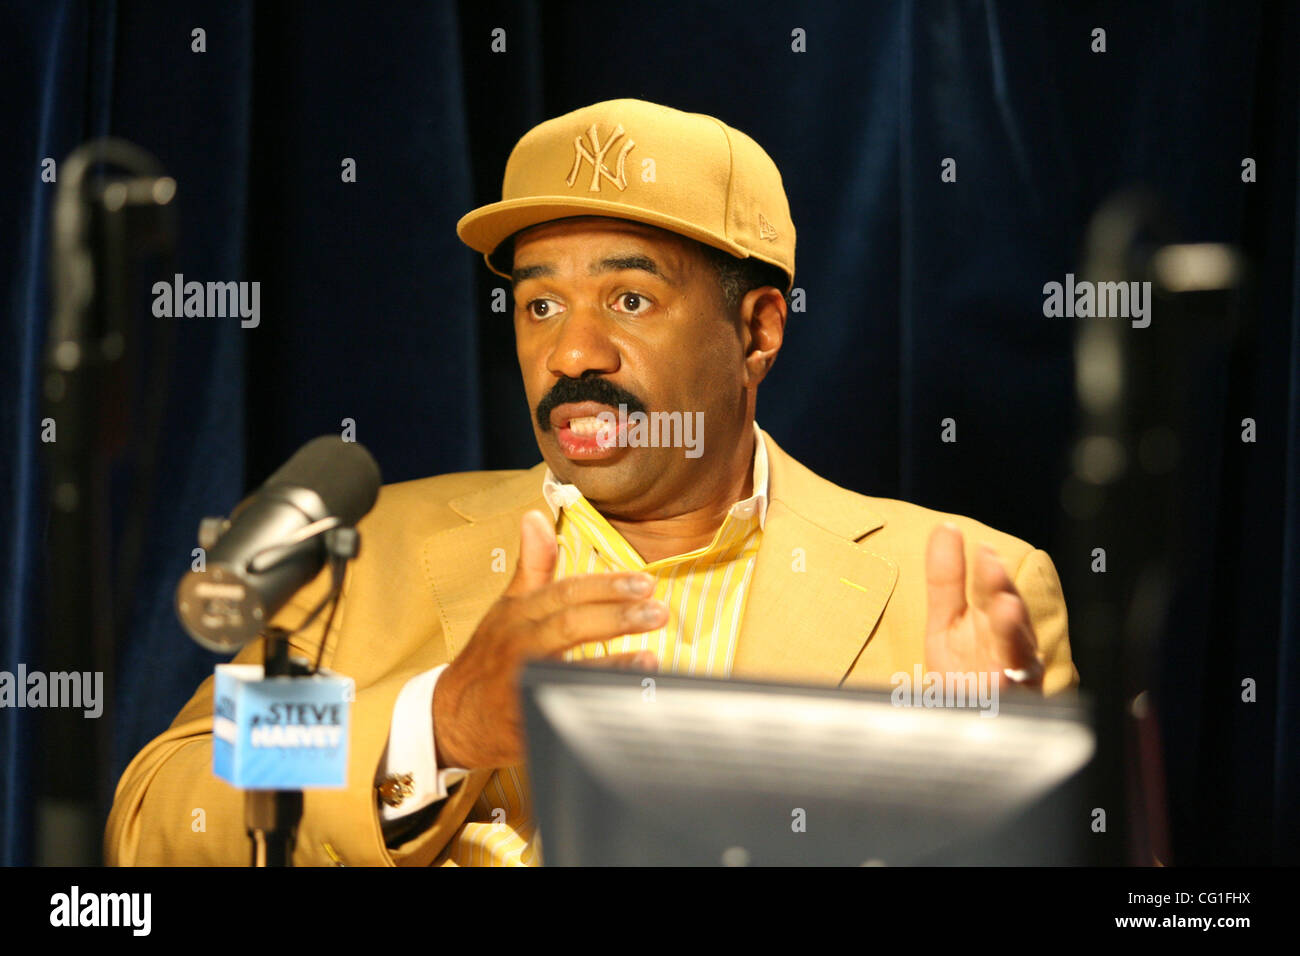 'The Steve Harvey morning show'  that airs on WBLS 107.5 in New York studios today Aug. 13, 2007. Photo - Stock Image